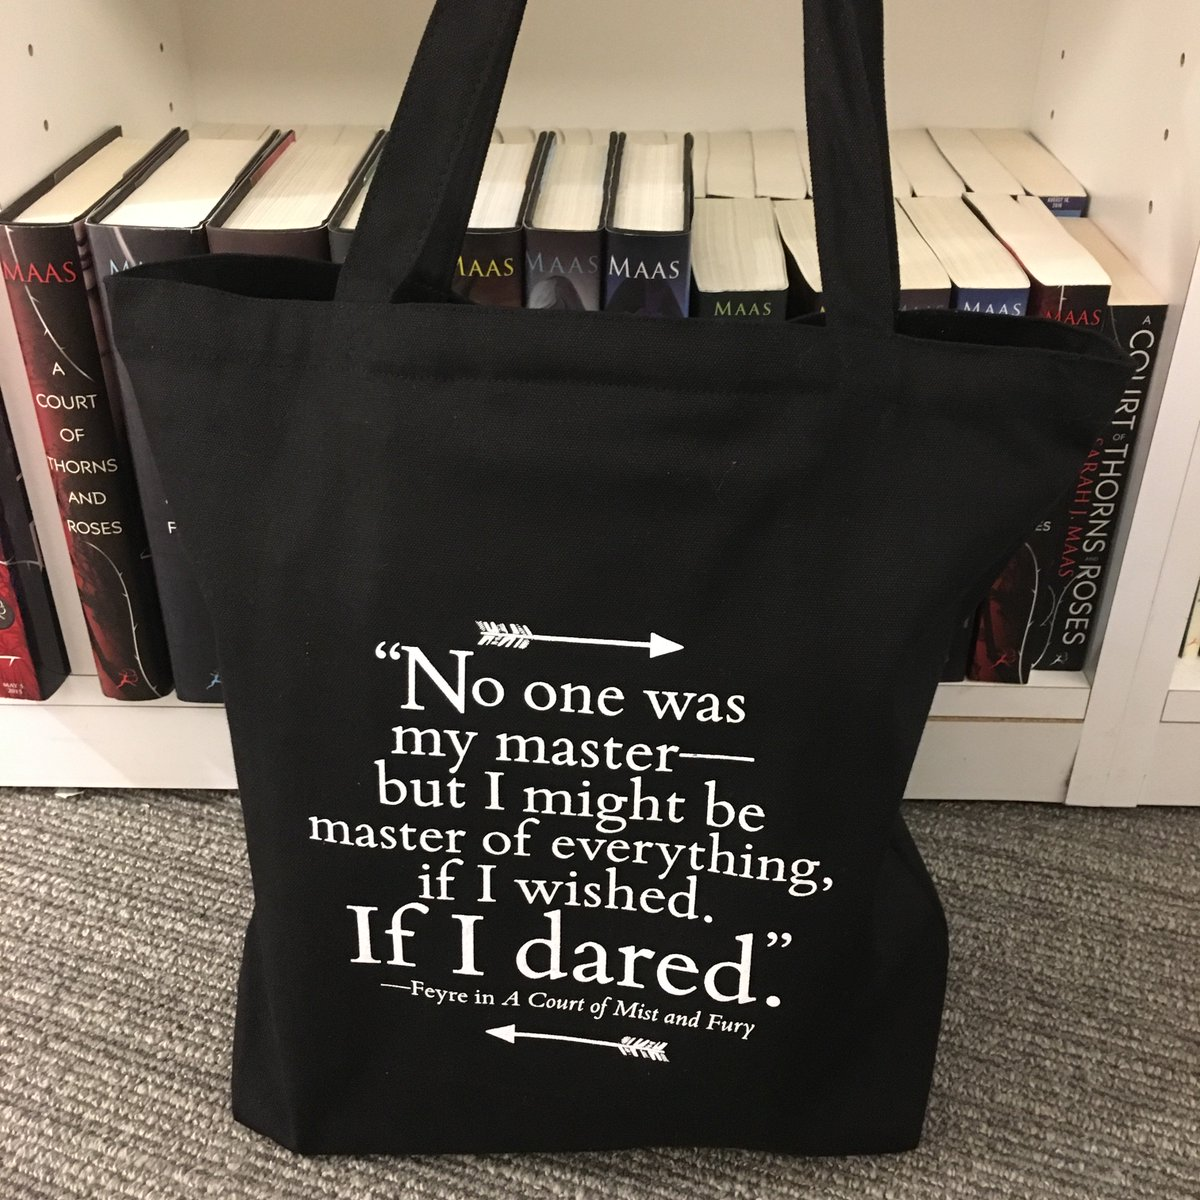 Happy #ToteThursday! RT & follow to win a @SJMaas A COURT OF MIST AND FURY tote bag (open internationally)! https://t.co/nC5ilc4Ndb